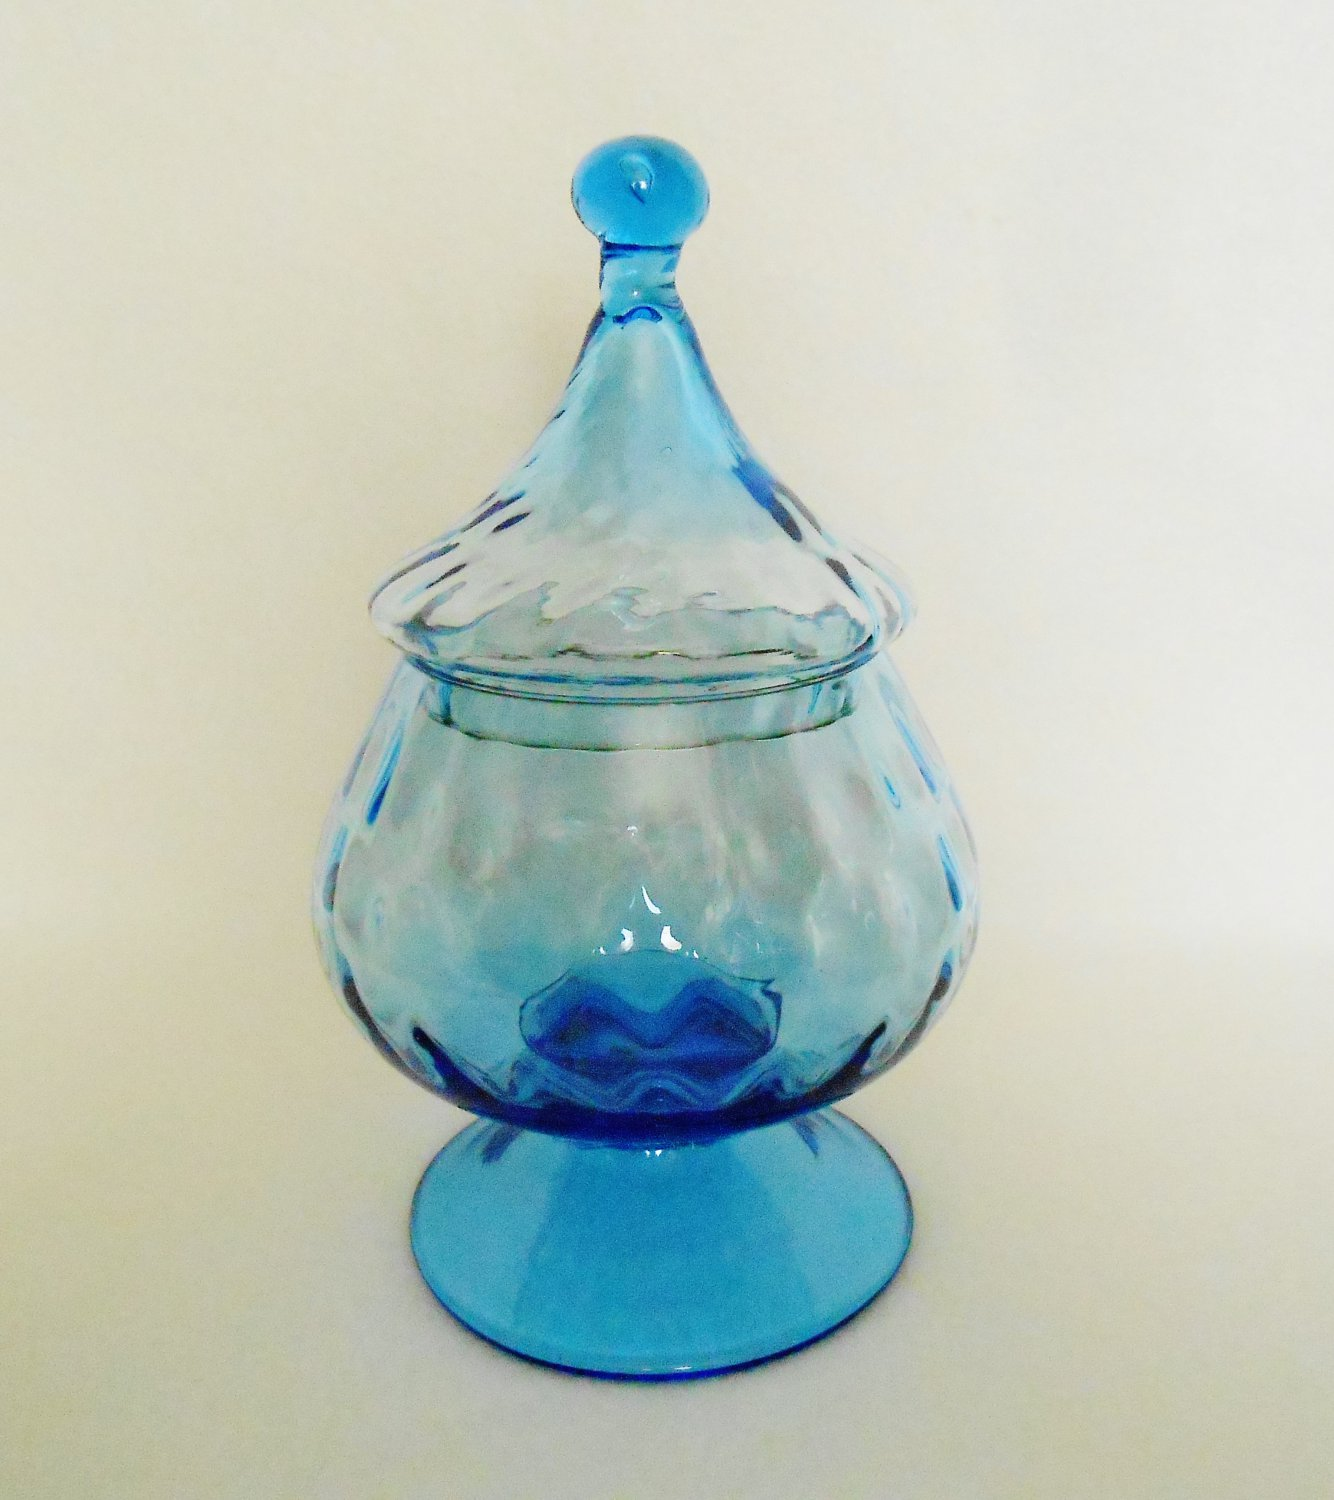 Italian Art Glass Circus Tent Apothecary Candy Jar Blue Optic Design Vintage